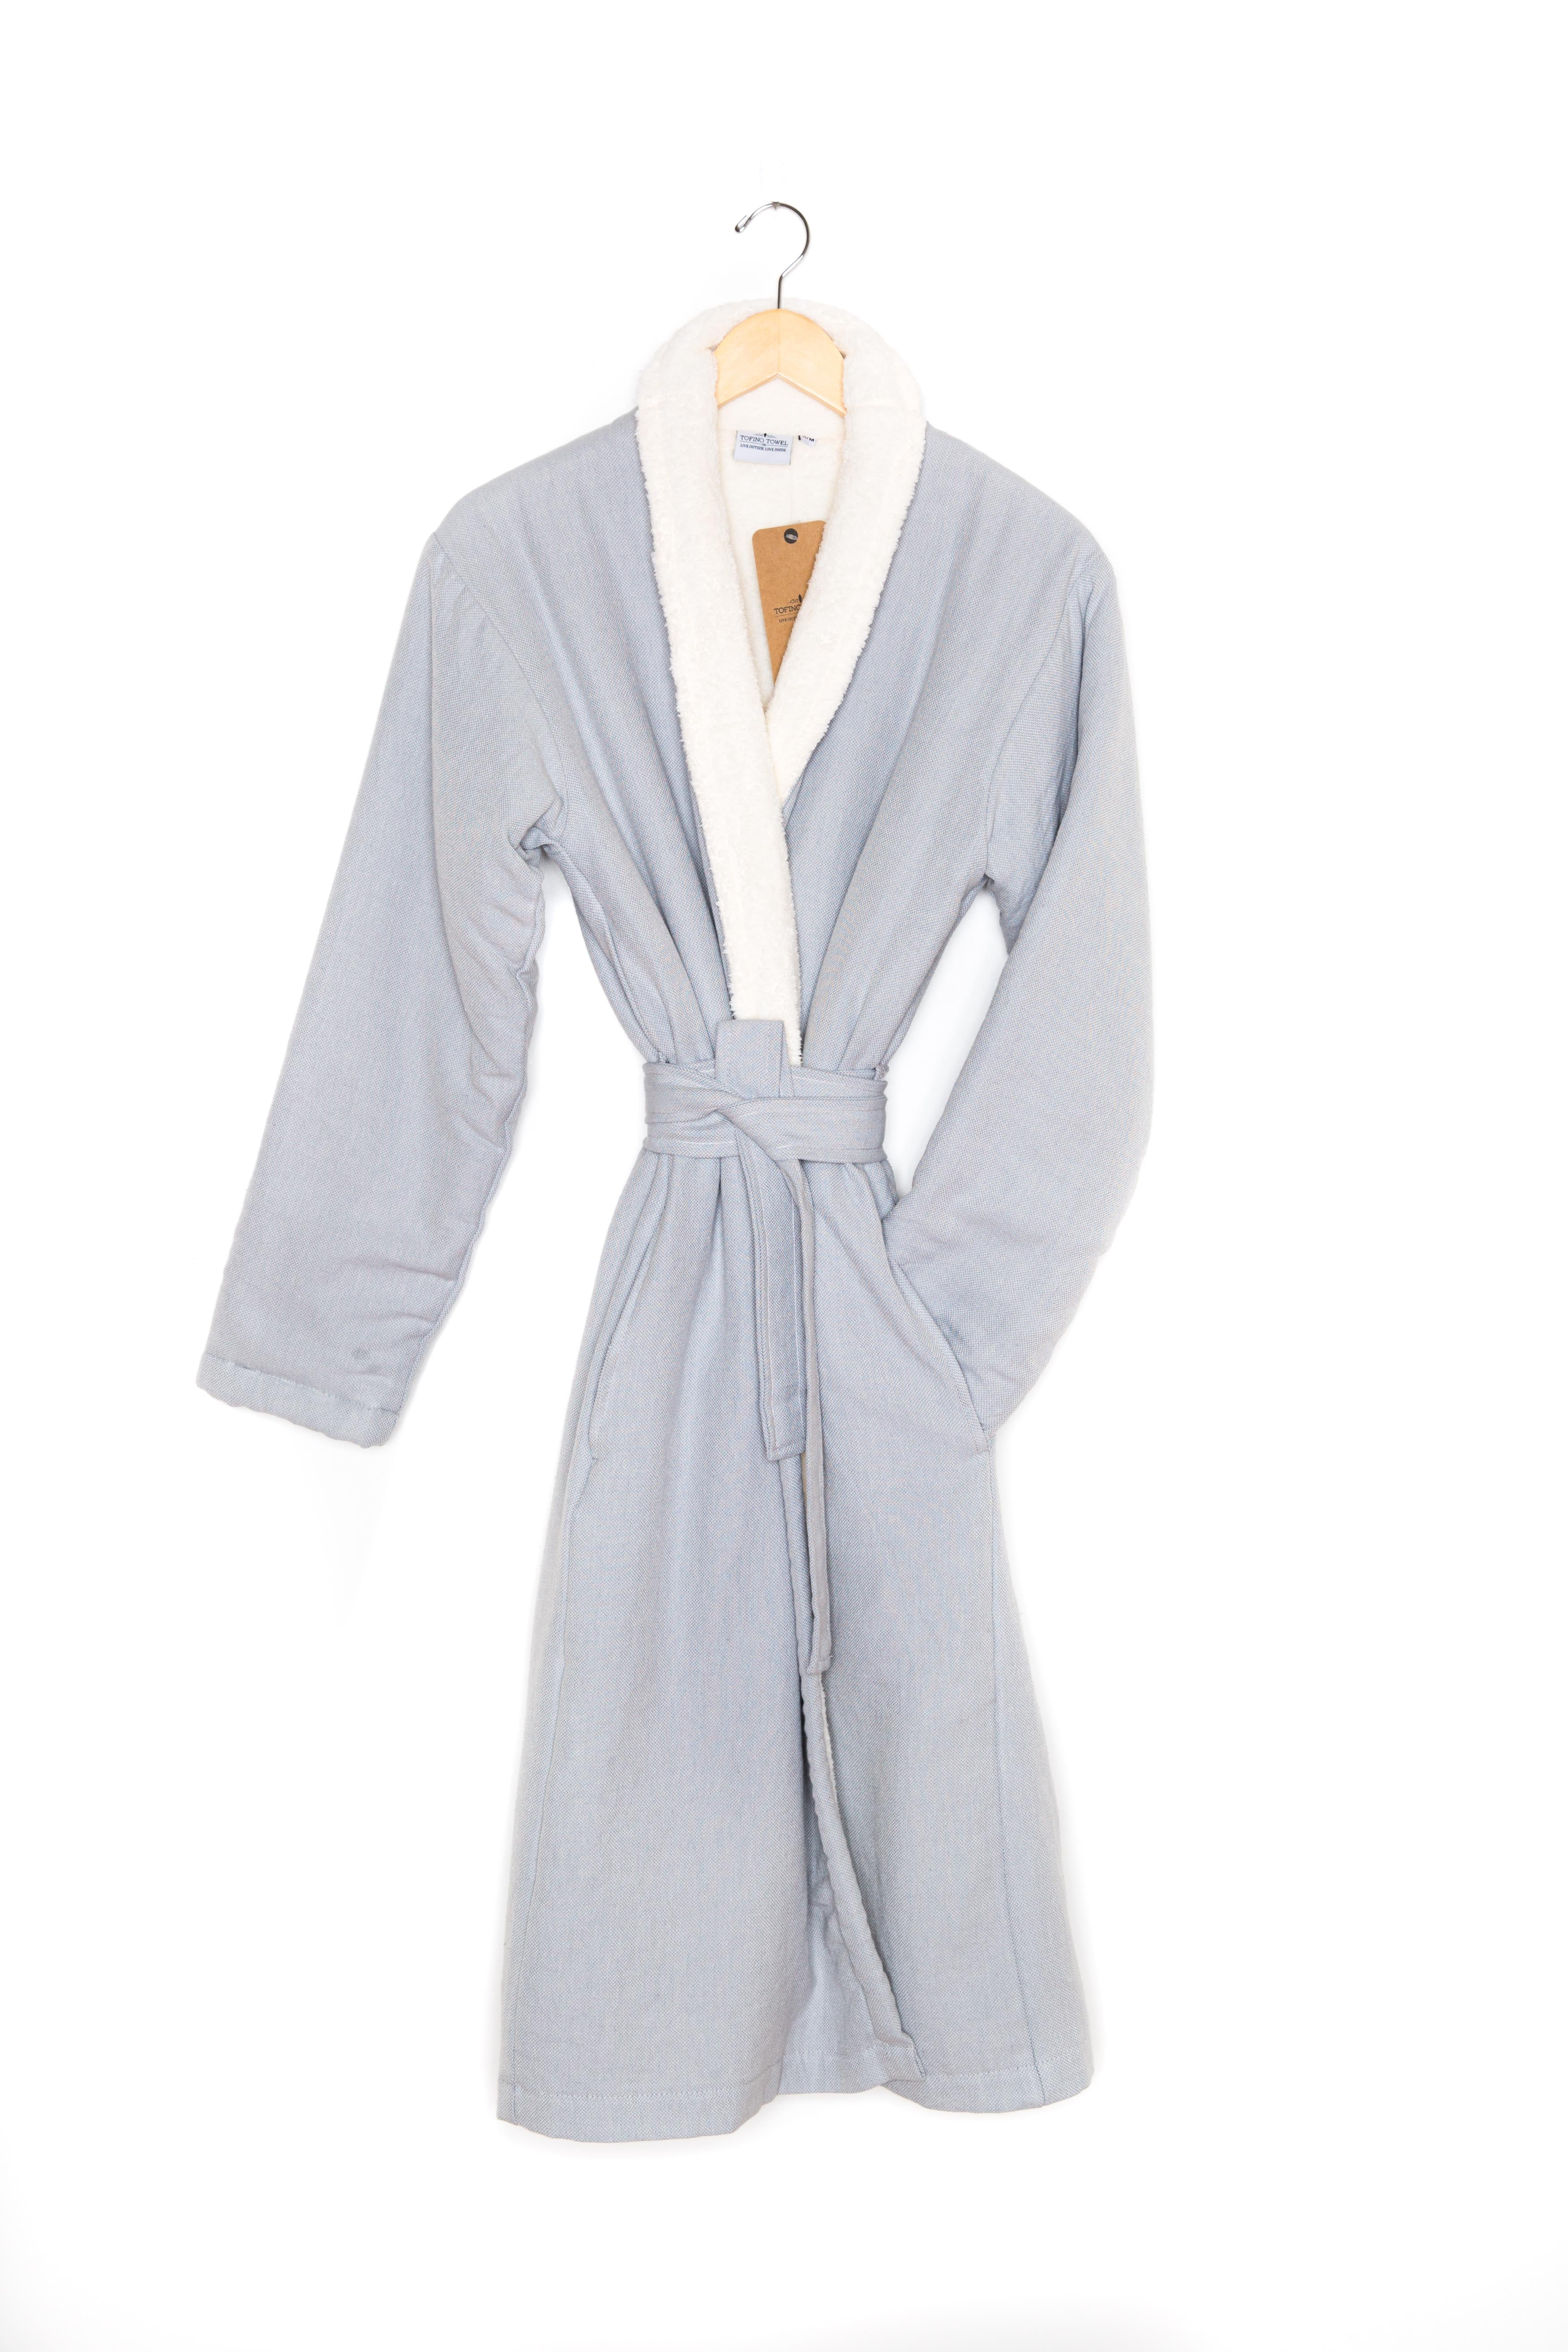 The GREY NORDIC Bath Robe